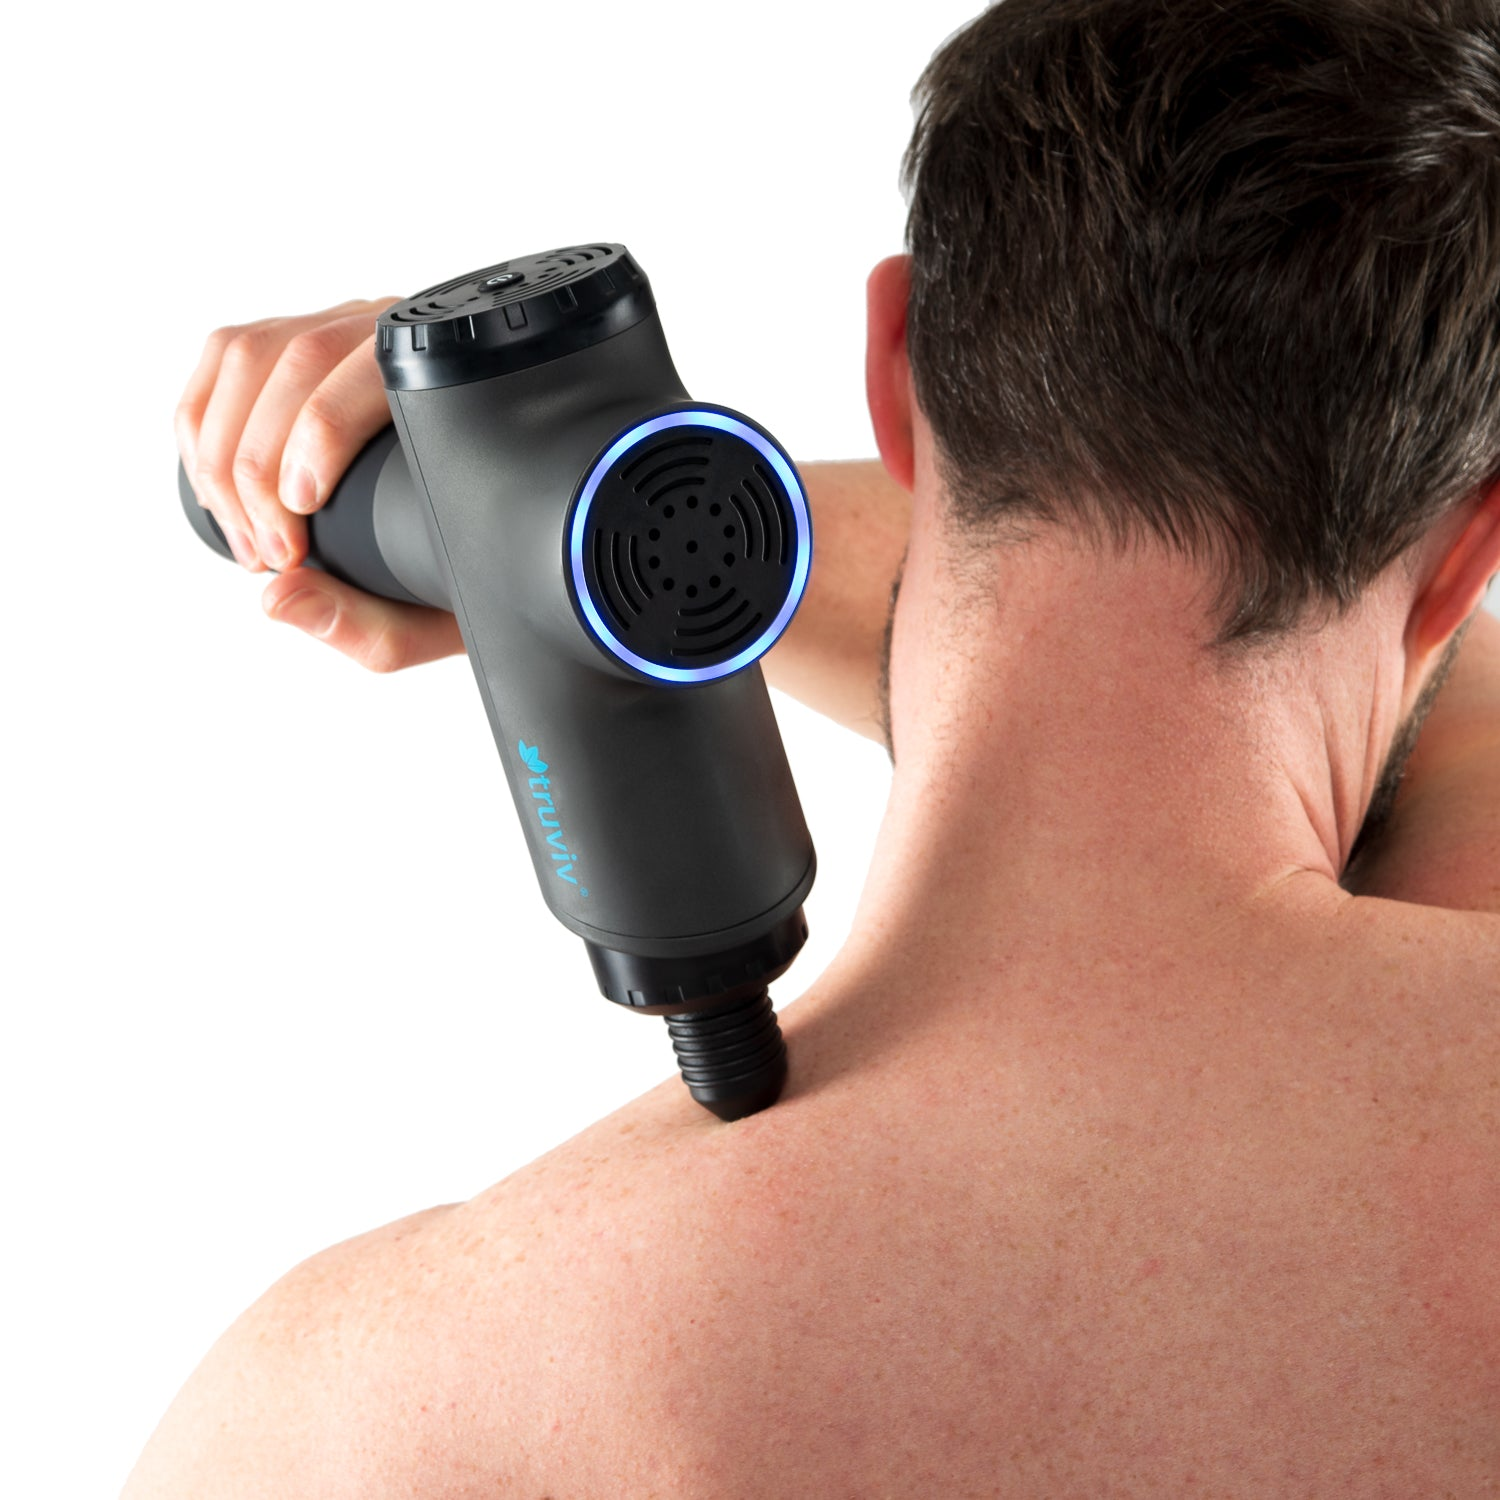 The Storm Massage Gun